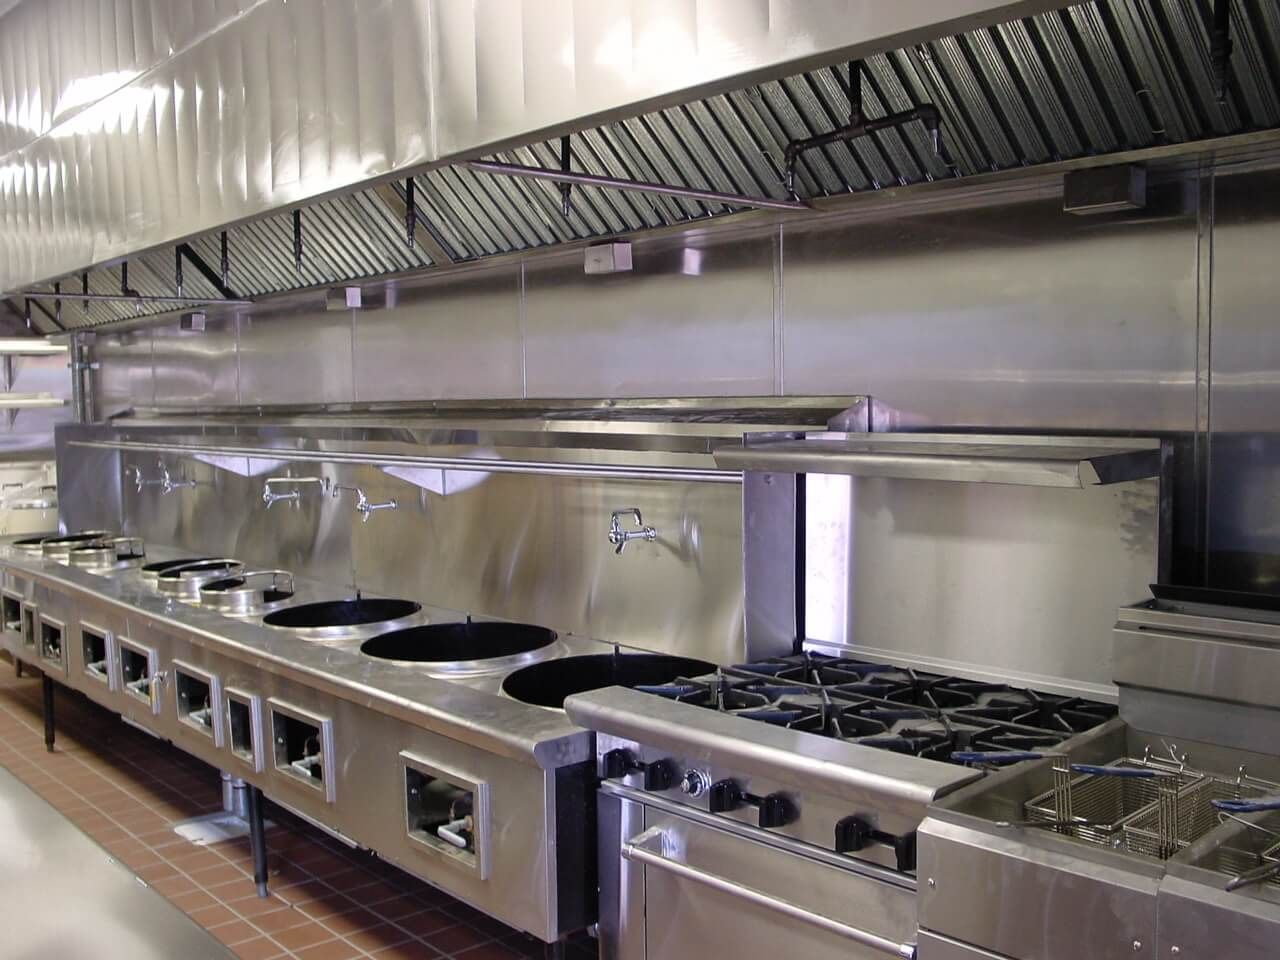 Kitchen Duct Cleaning Services Malaysia Grease My Kitchen Exhaust Kitchen Exhaust Cleaning Commercial Kitchen Design